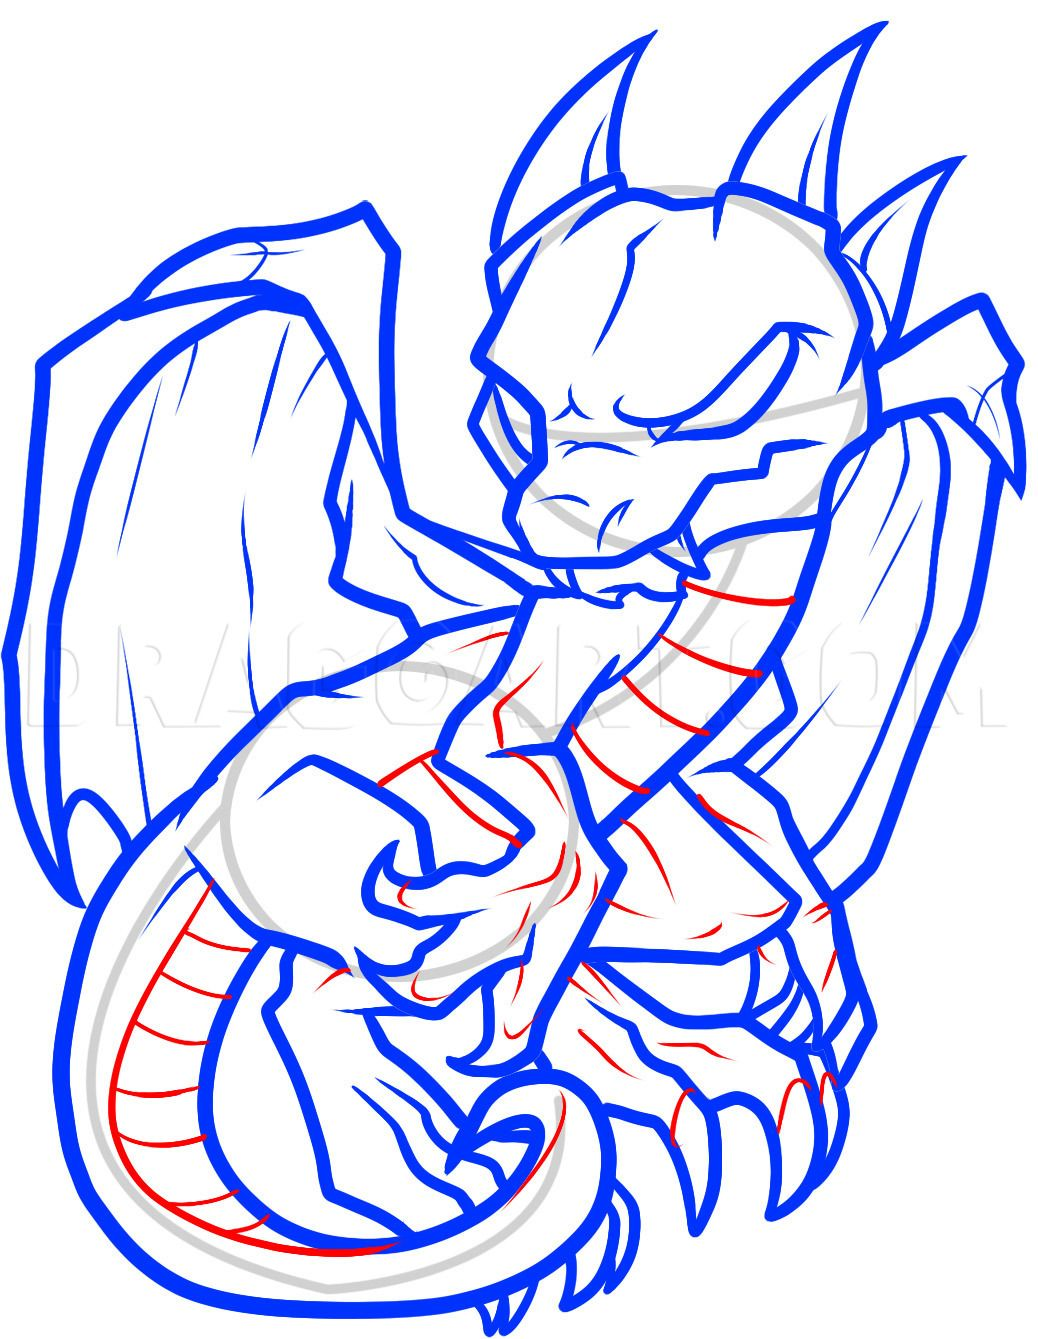 How To Draw An Anthro Baby Dragon Anthro Baby Dragon Step By Step Drawing Guide By Dawn In 2020 Dragon Coloring Page Coloring Pages Coloring Pages For Grown Ups